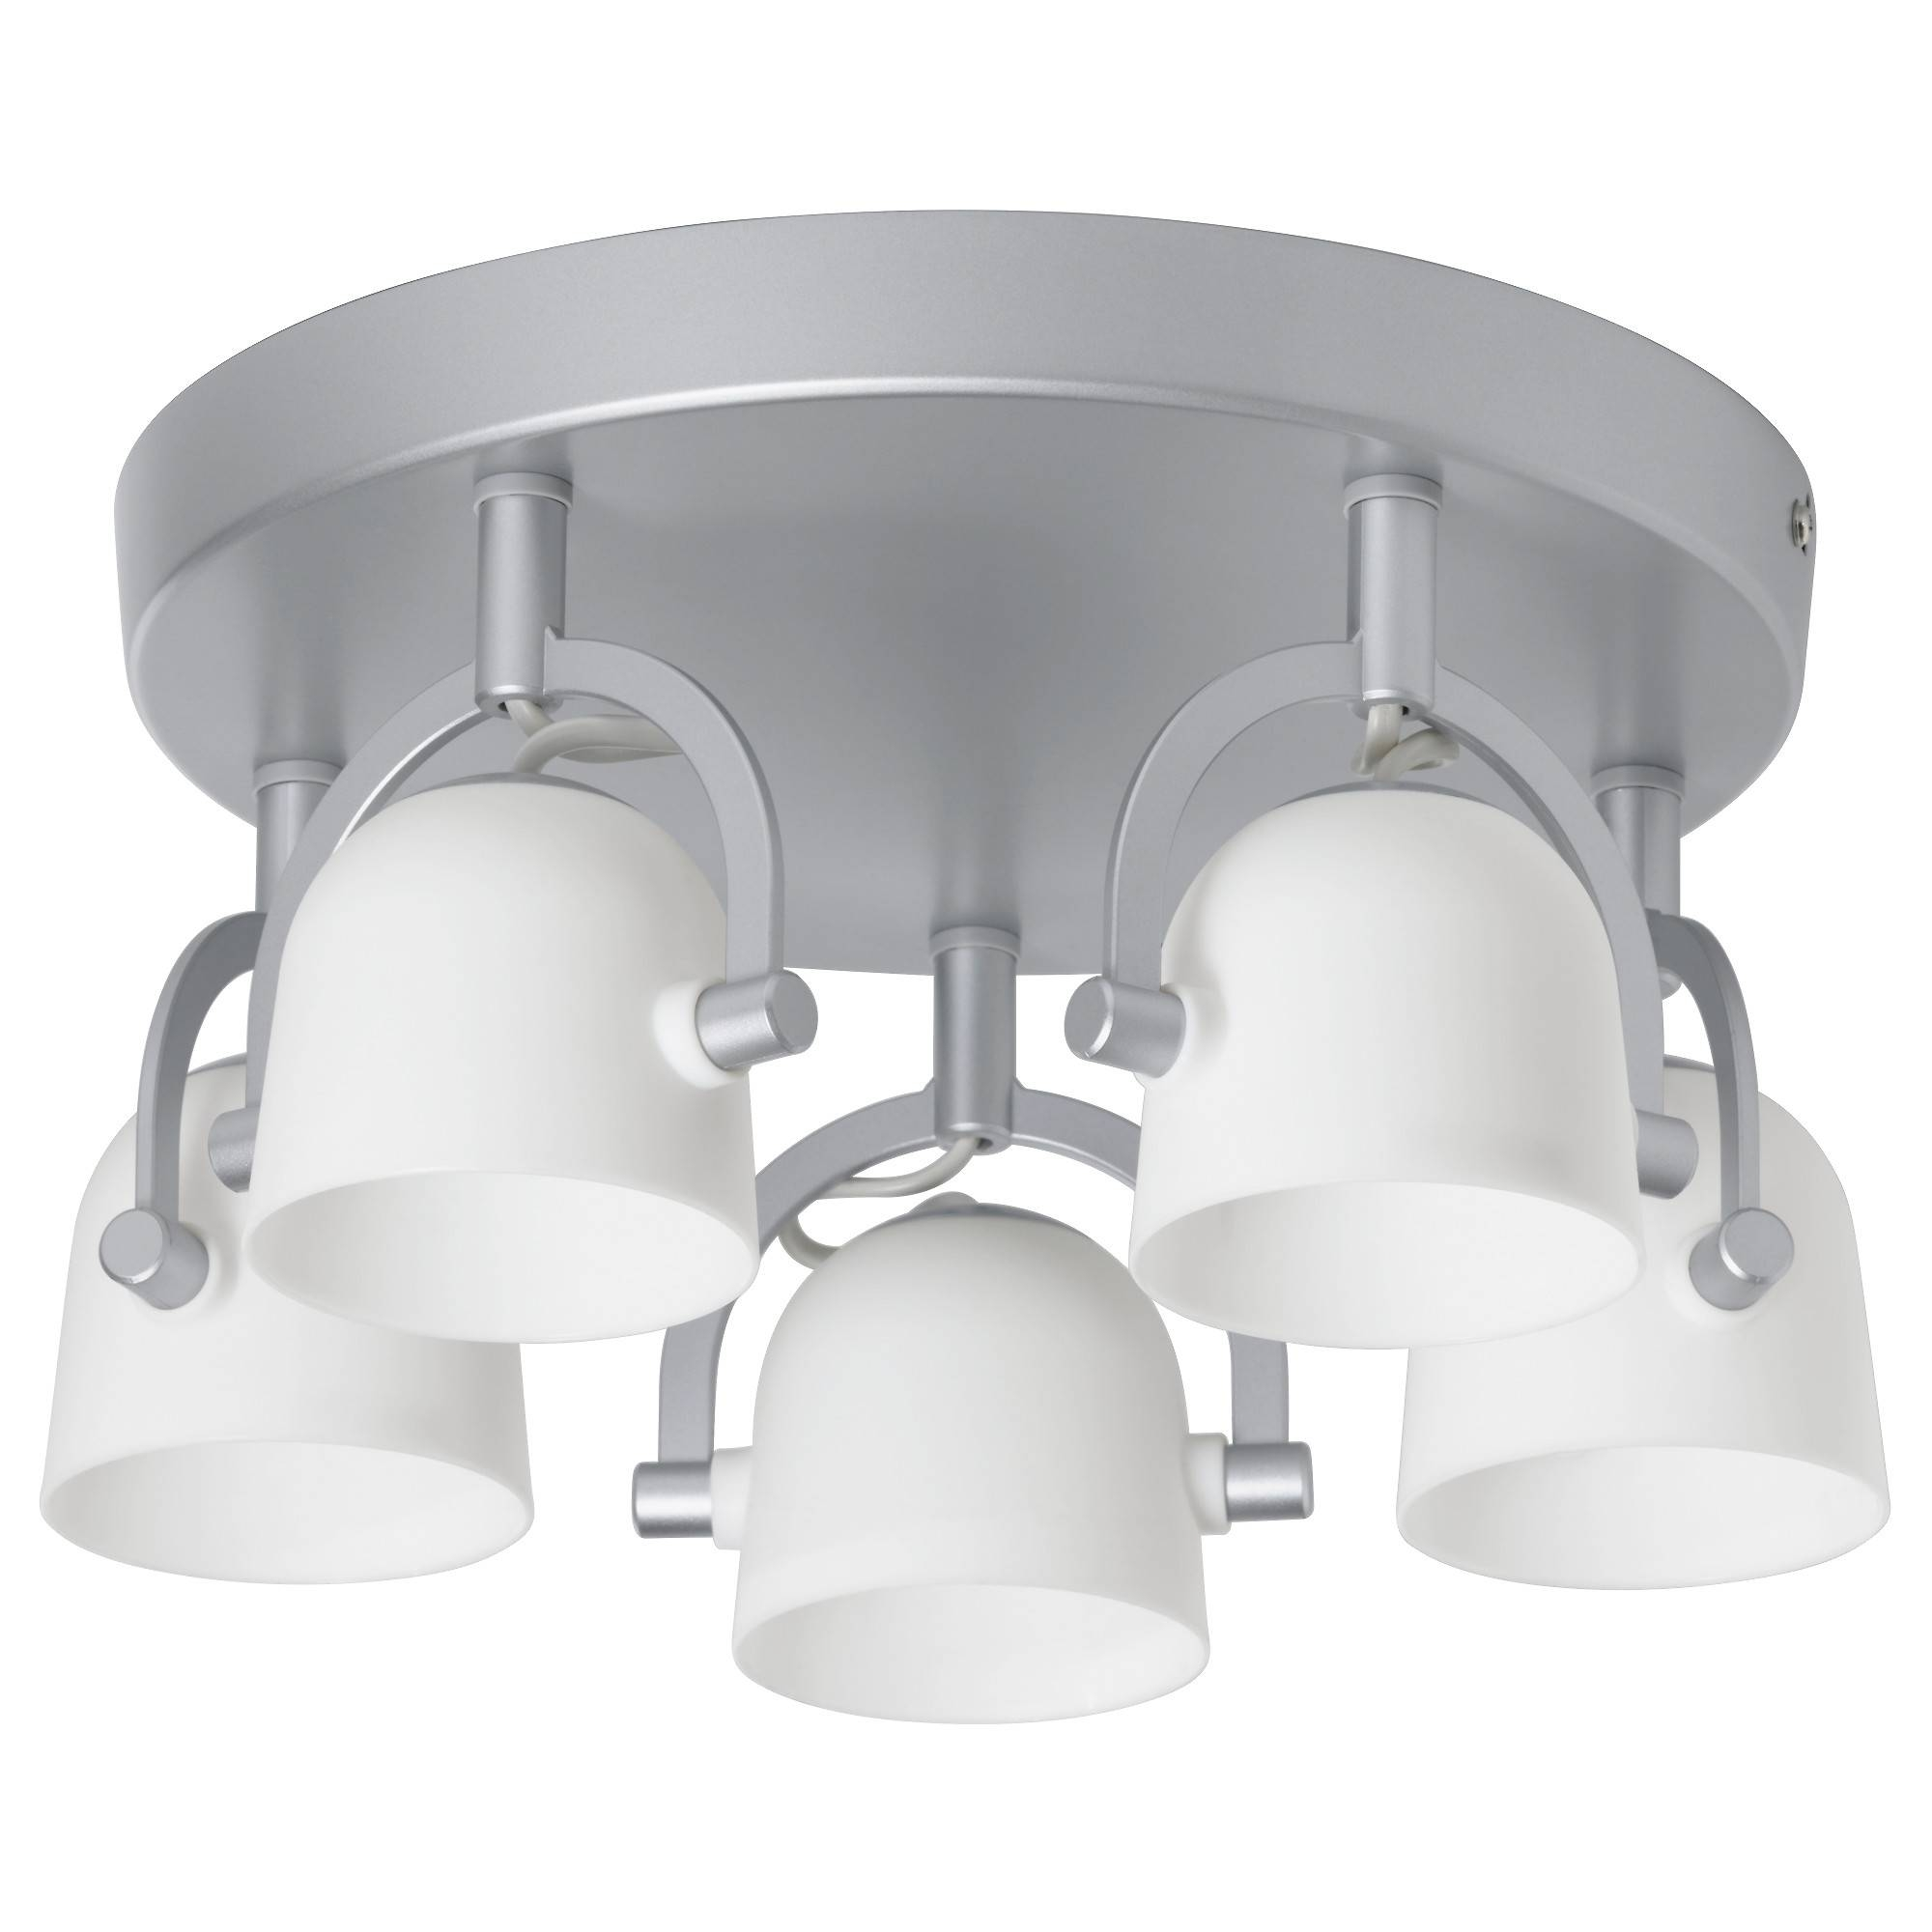 Ceiling Lights & Lamps - Ikea intended for Ikea Recessed Lighting (Image 4 of 15)